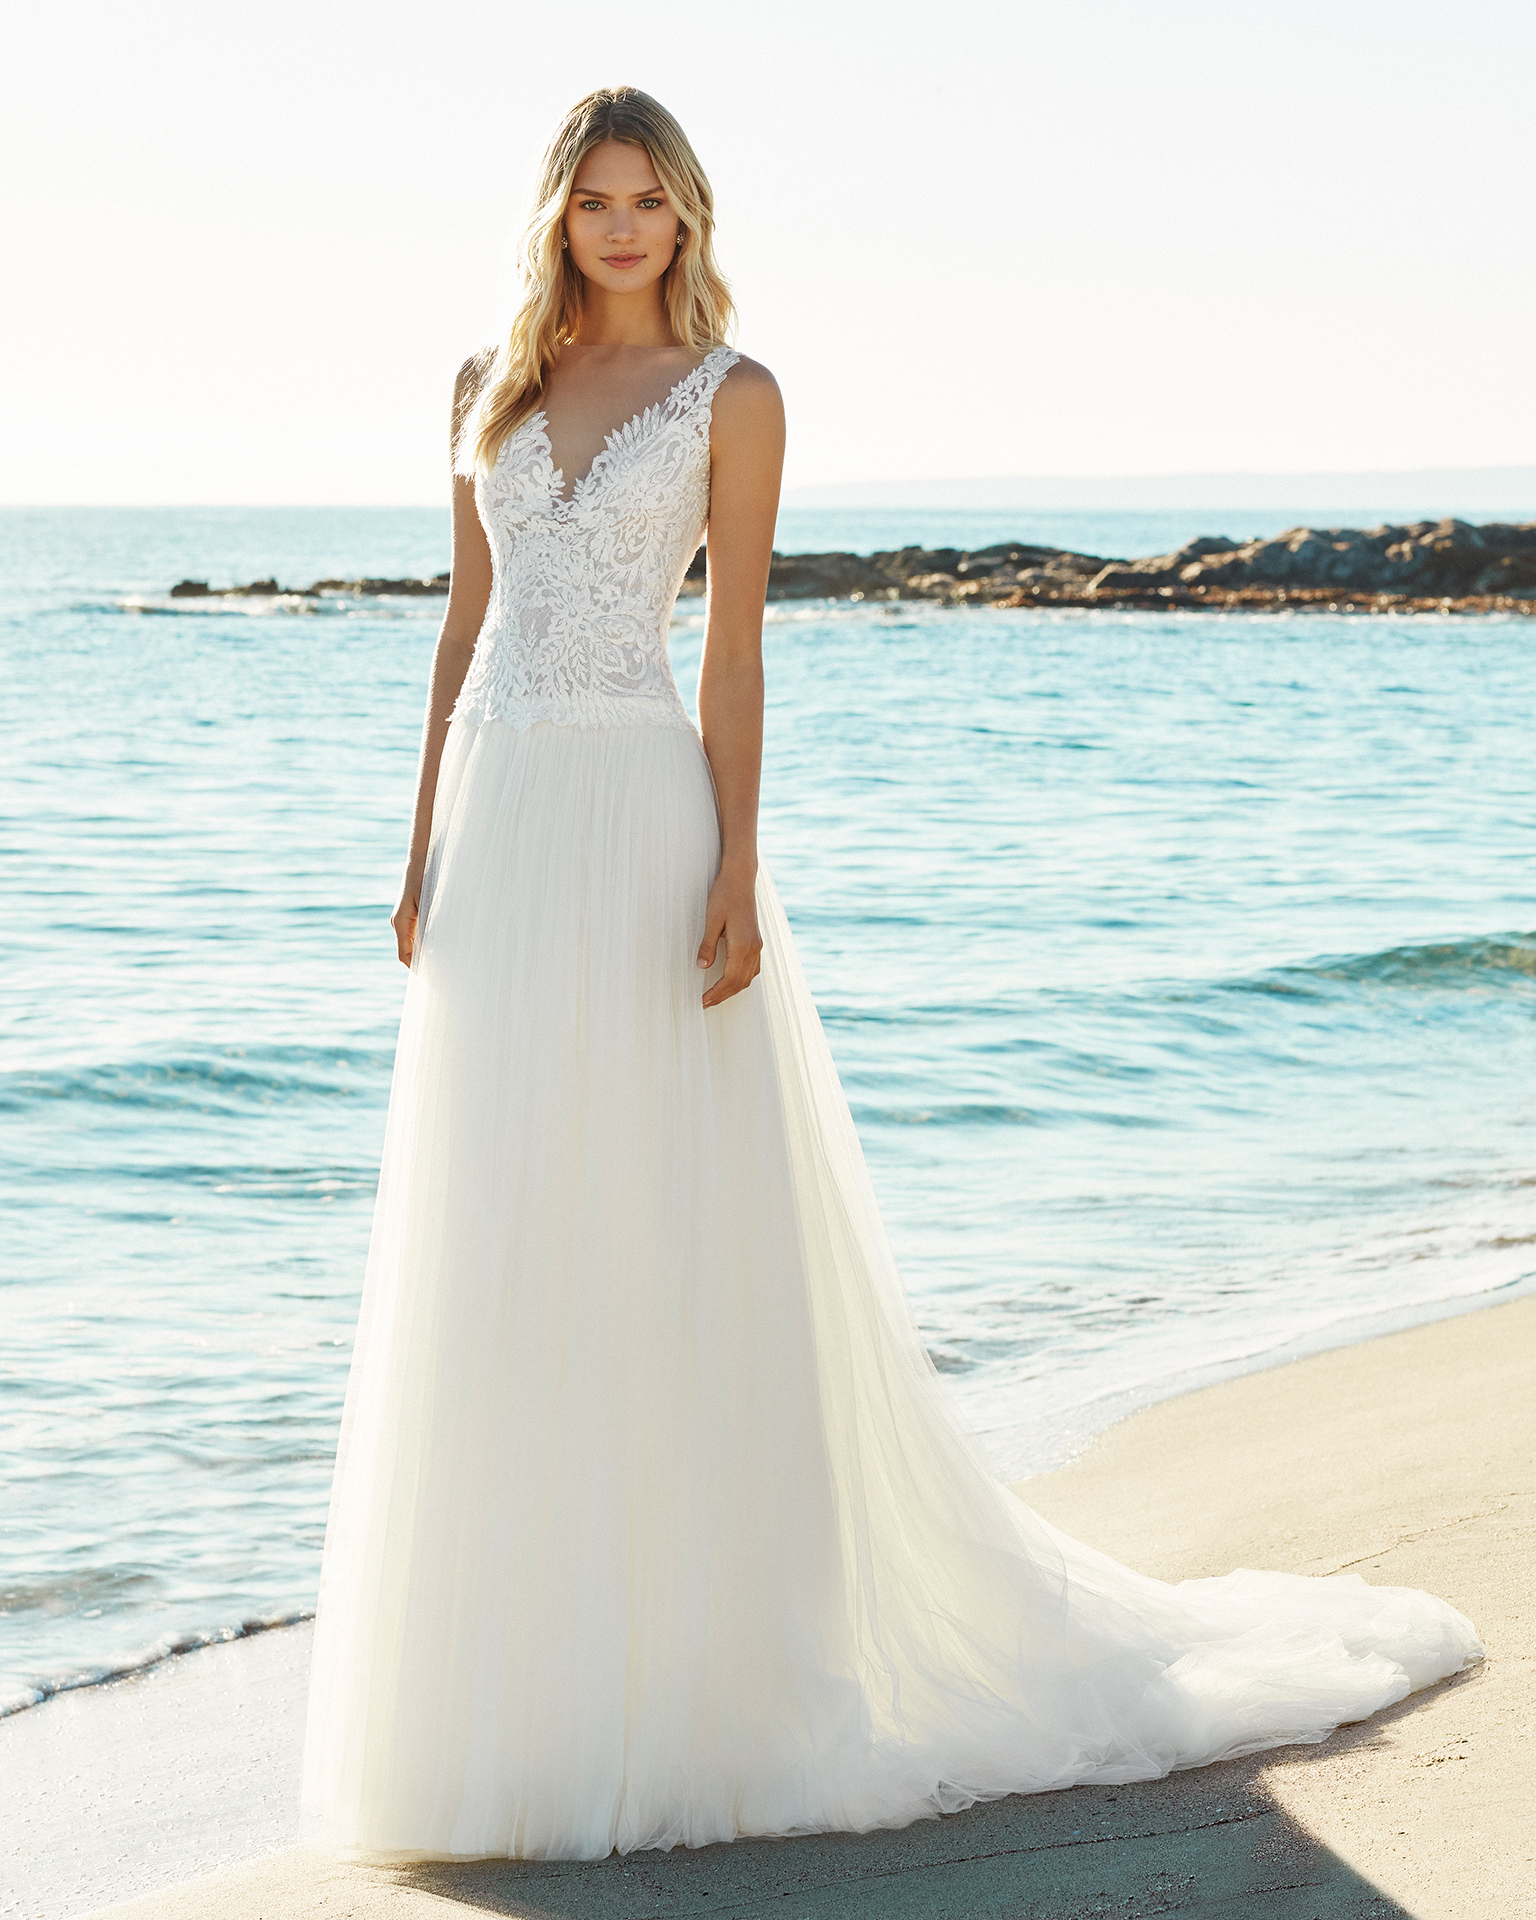 A-line beaded lace and soft tulle wedding dress. V-neckline and low back. Available in natural. 2019 AIRE BEACH WEDDING Collection.